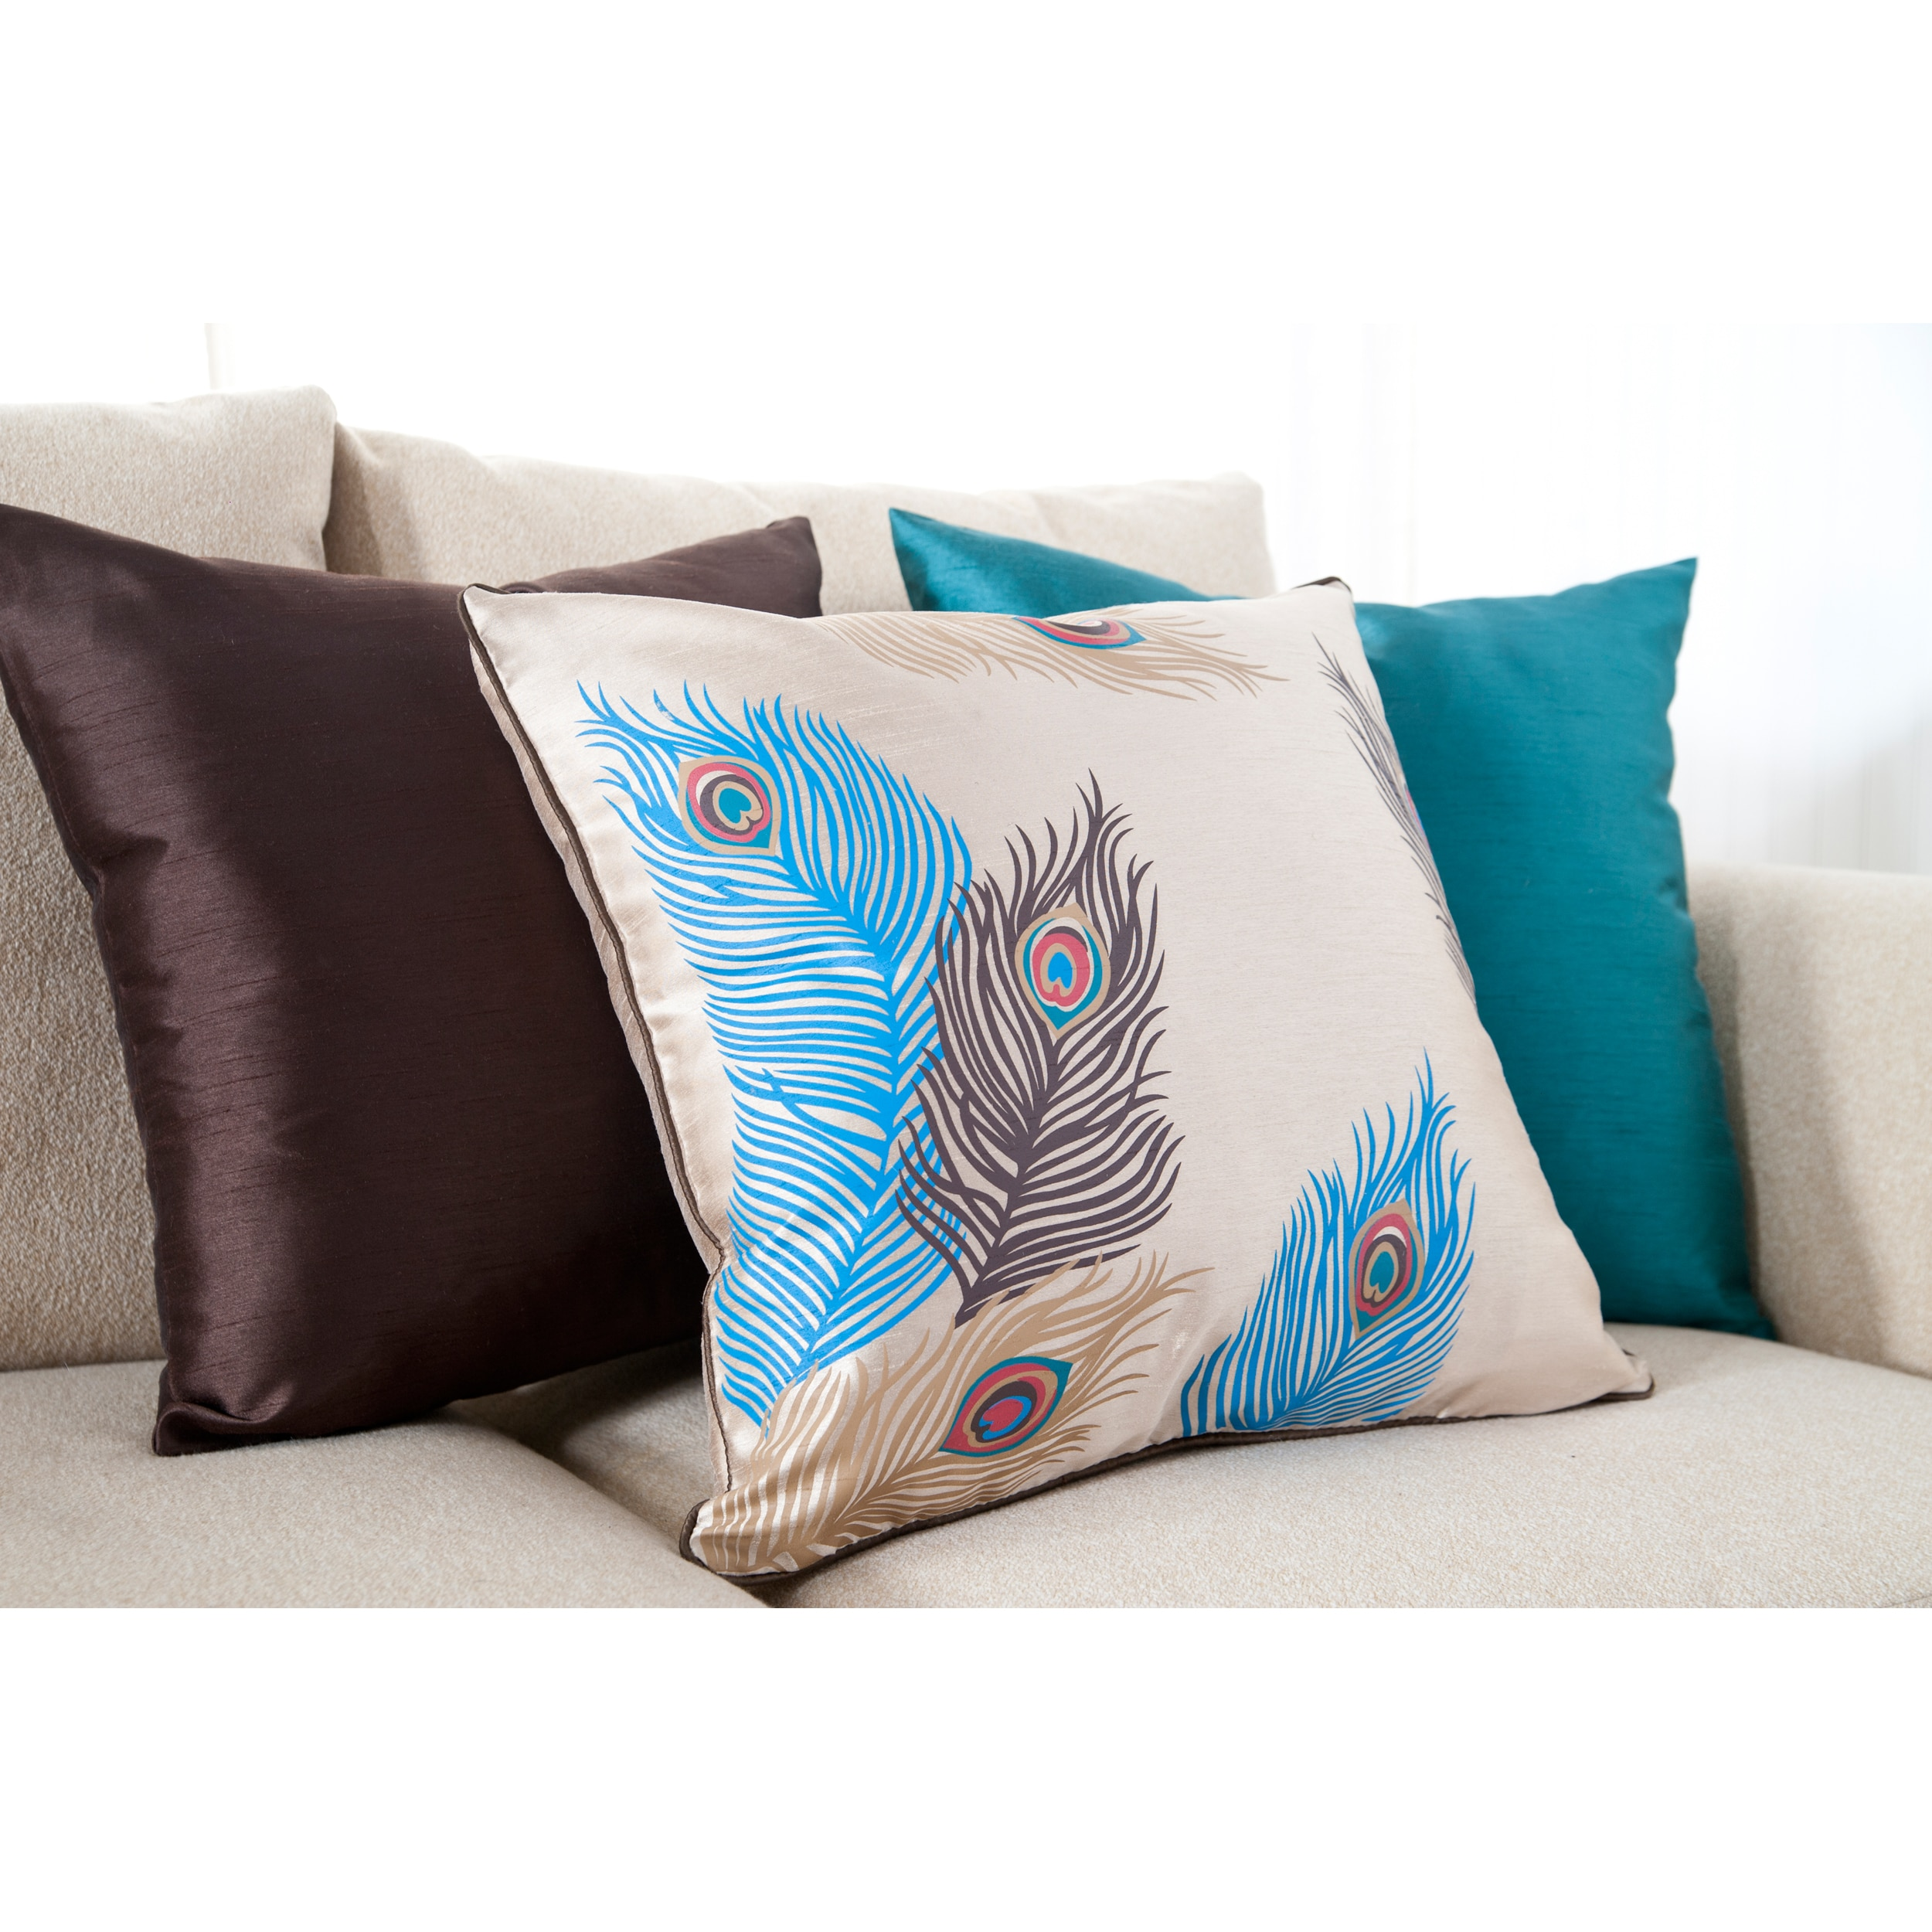 Feathered Decorative 18-inch Down Pillows (Set of 3) - Free Shipping Today - Overstock.com ...